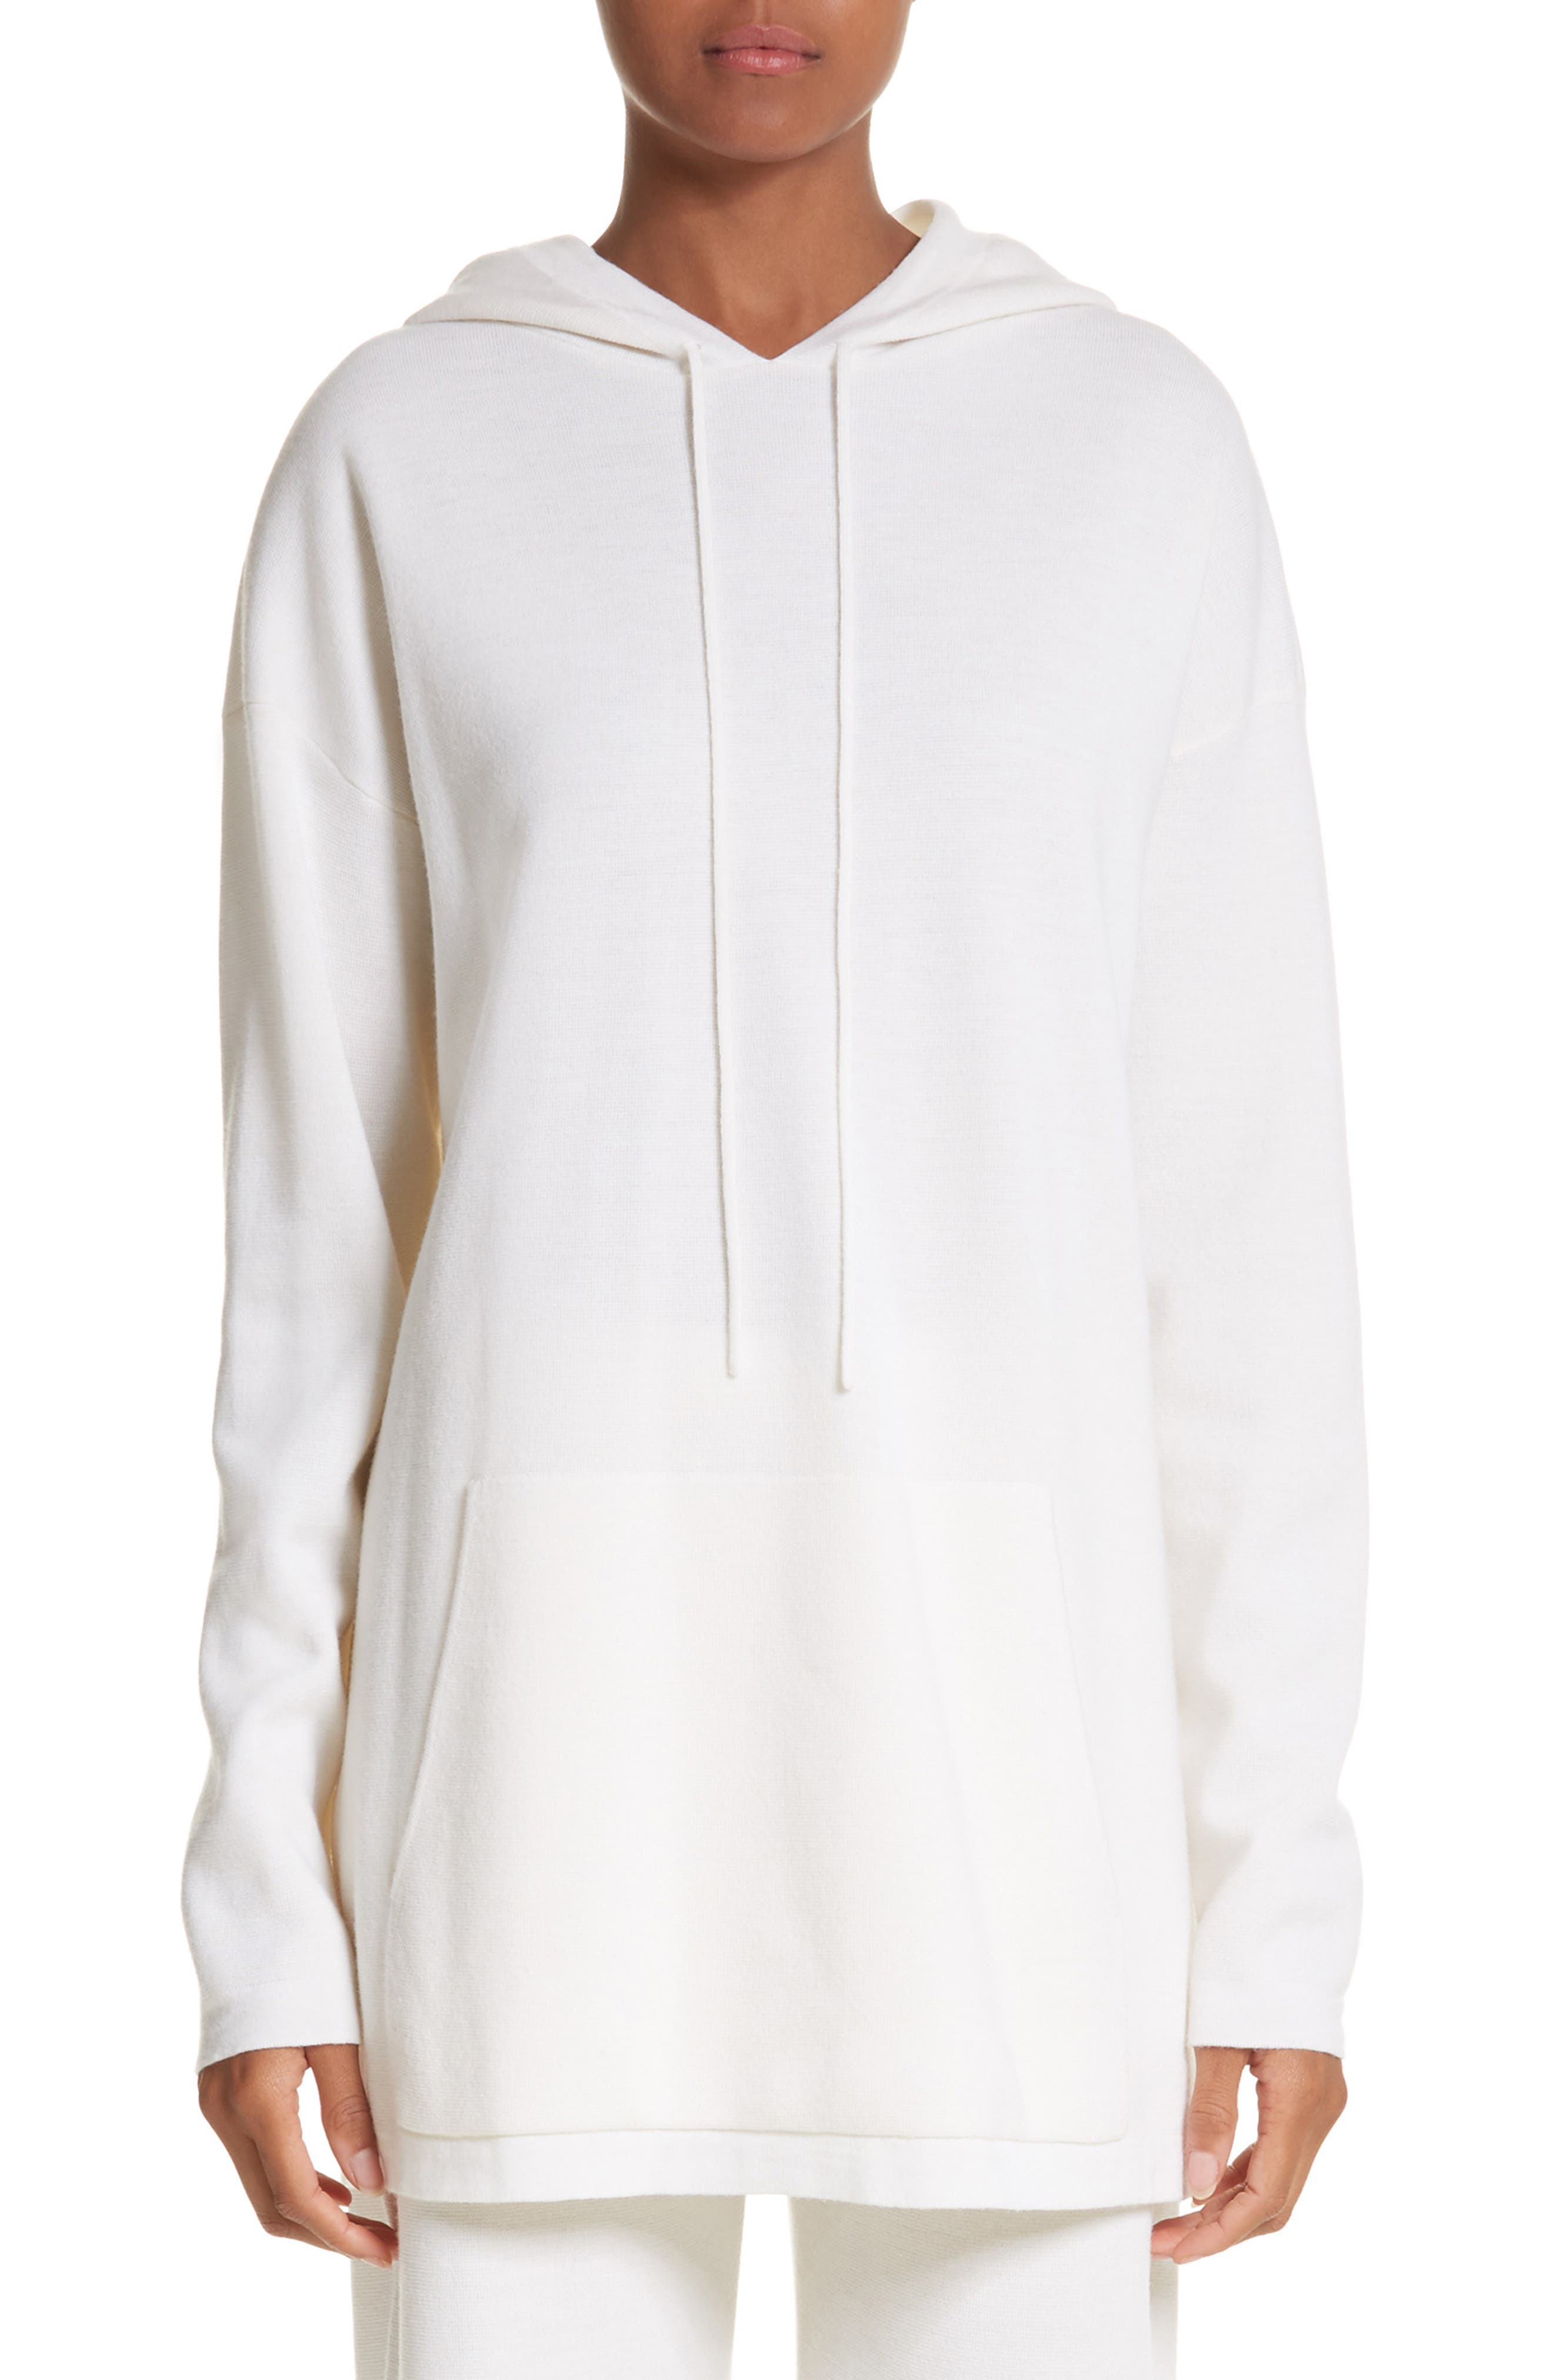 Max Mara Marmo Wool Hooded Sweatshirt